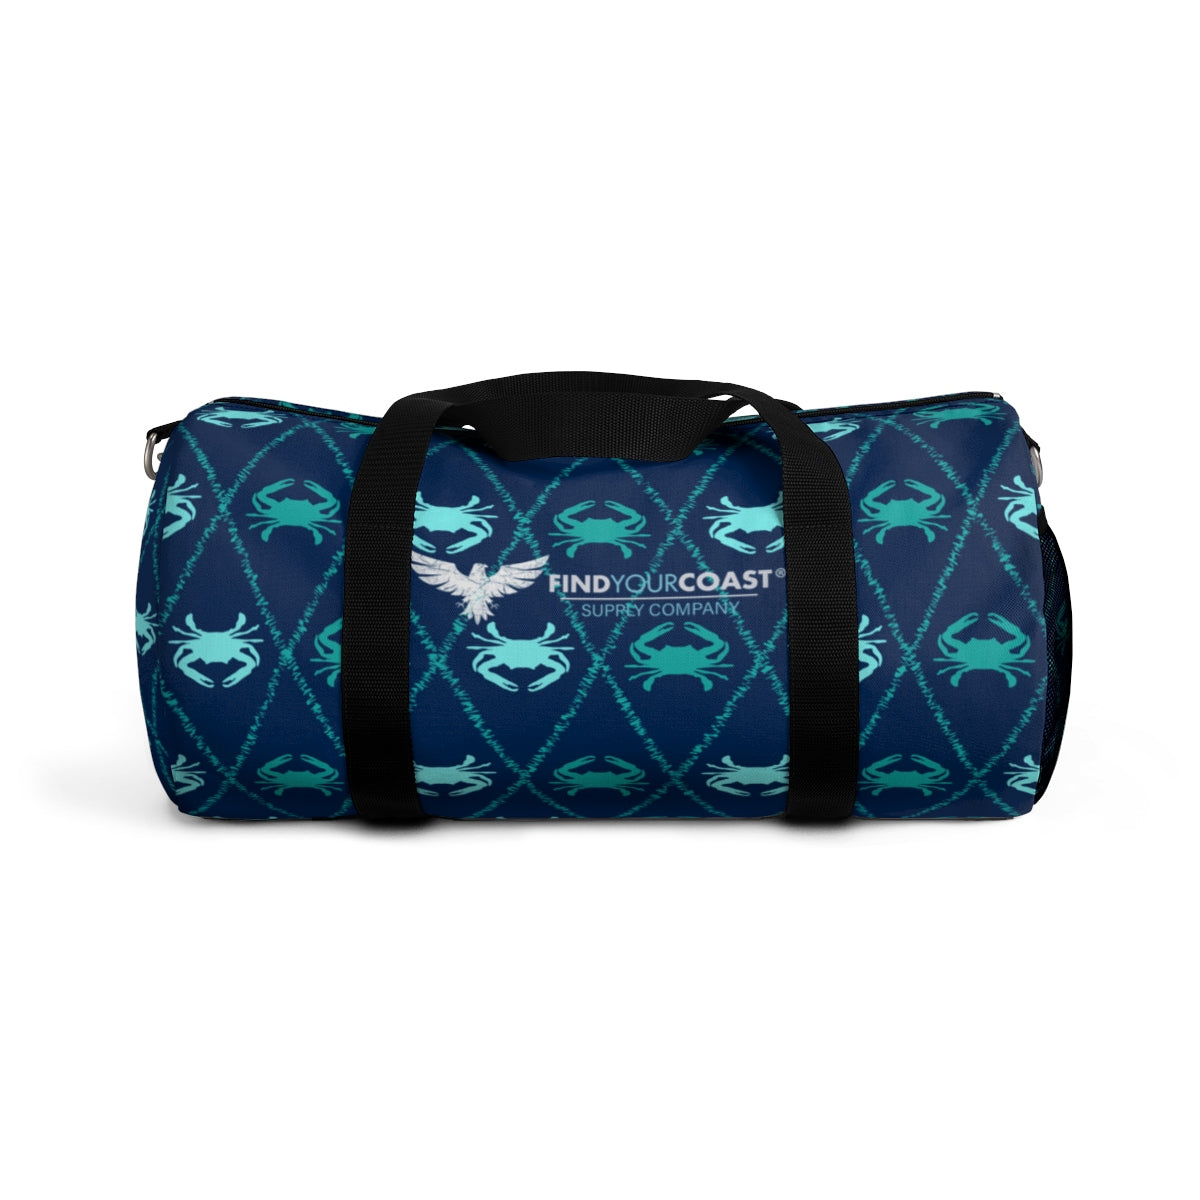 Find Your Coast Crabby Duffel Bag - Find Your Coast Supply Co.